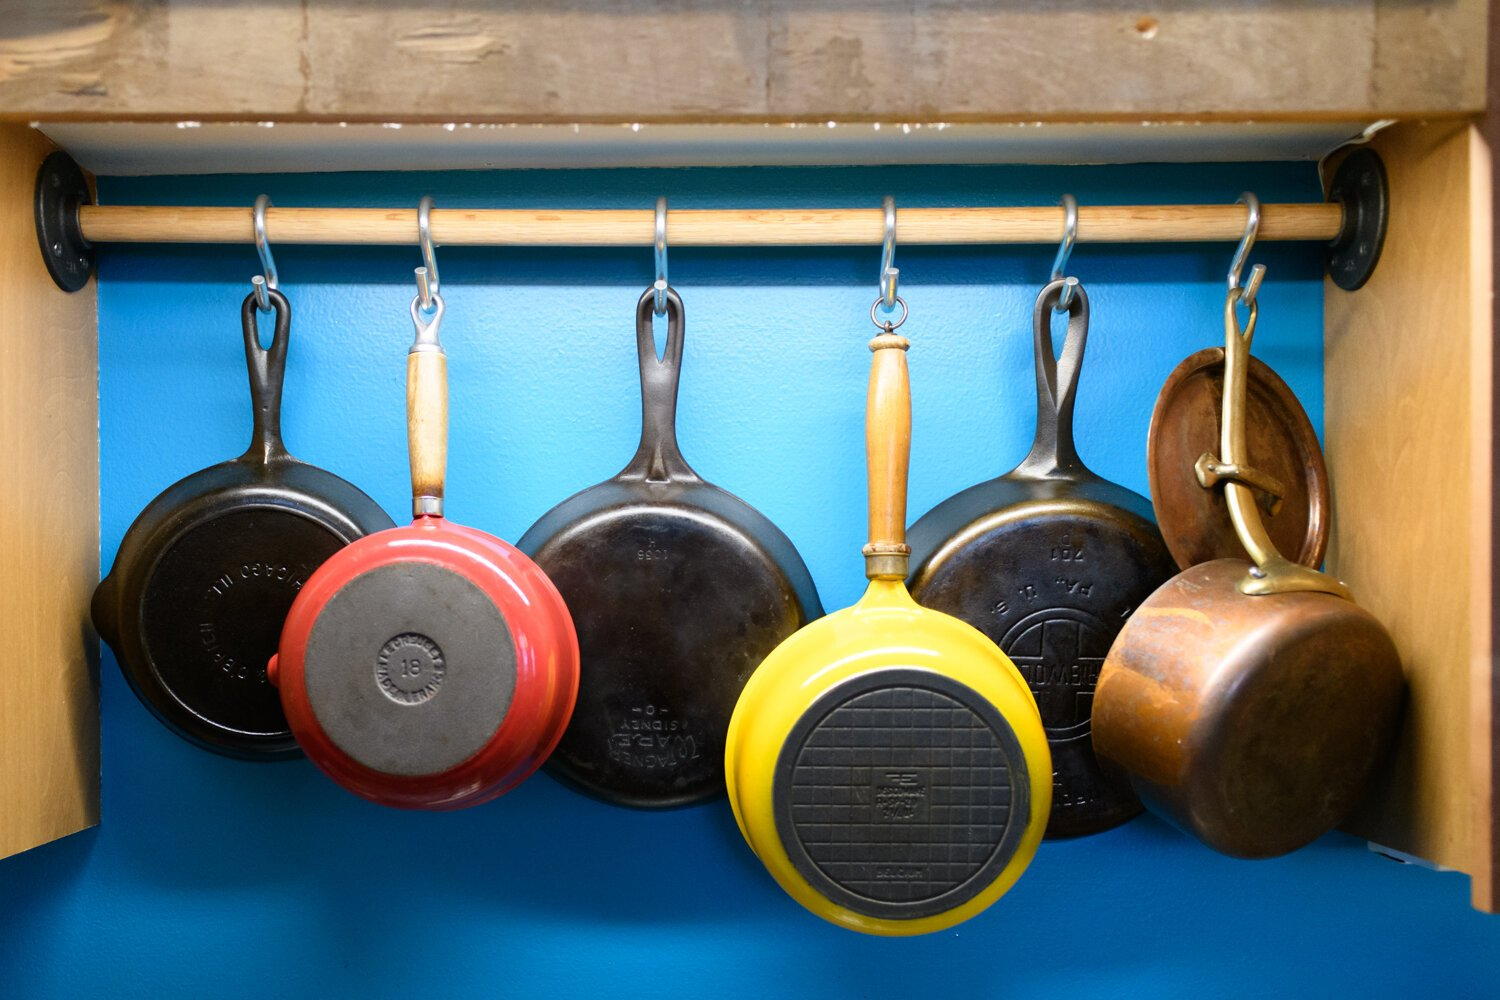 Pots and pans are hung up in a creative way in the kitchen.